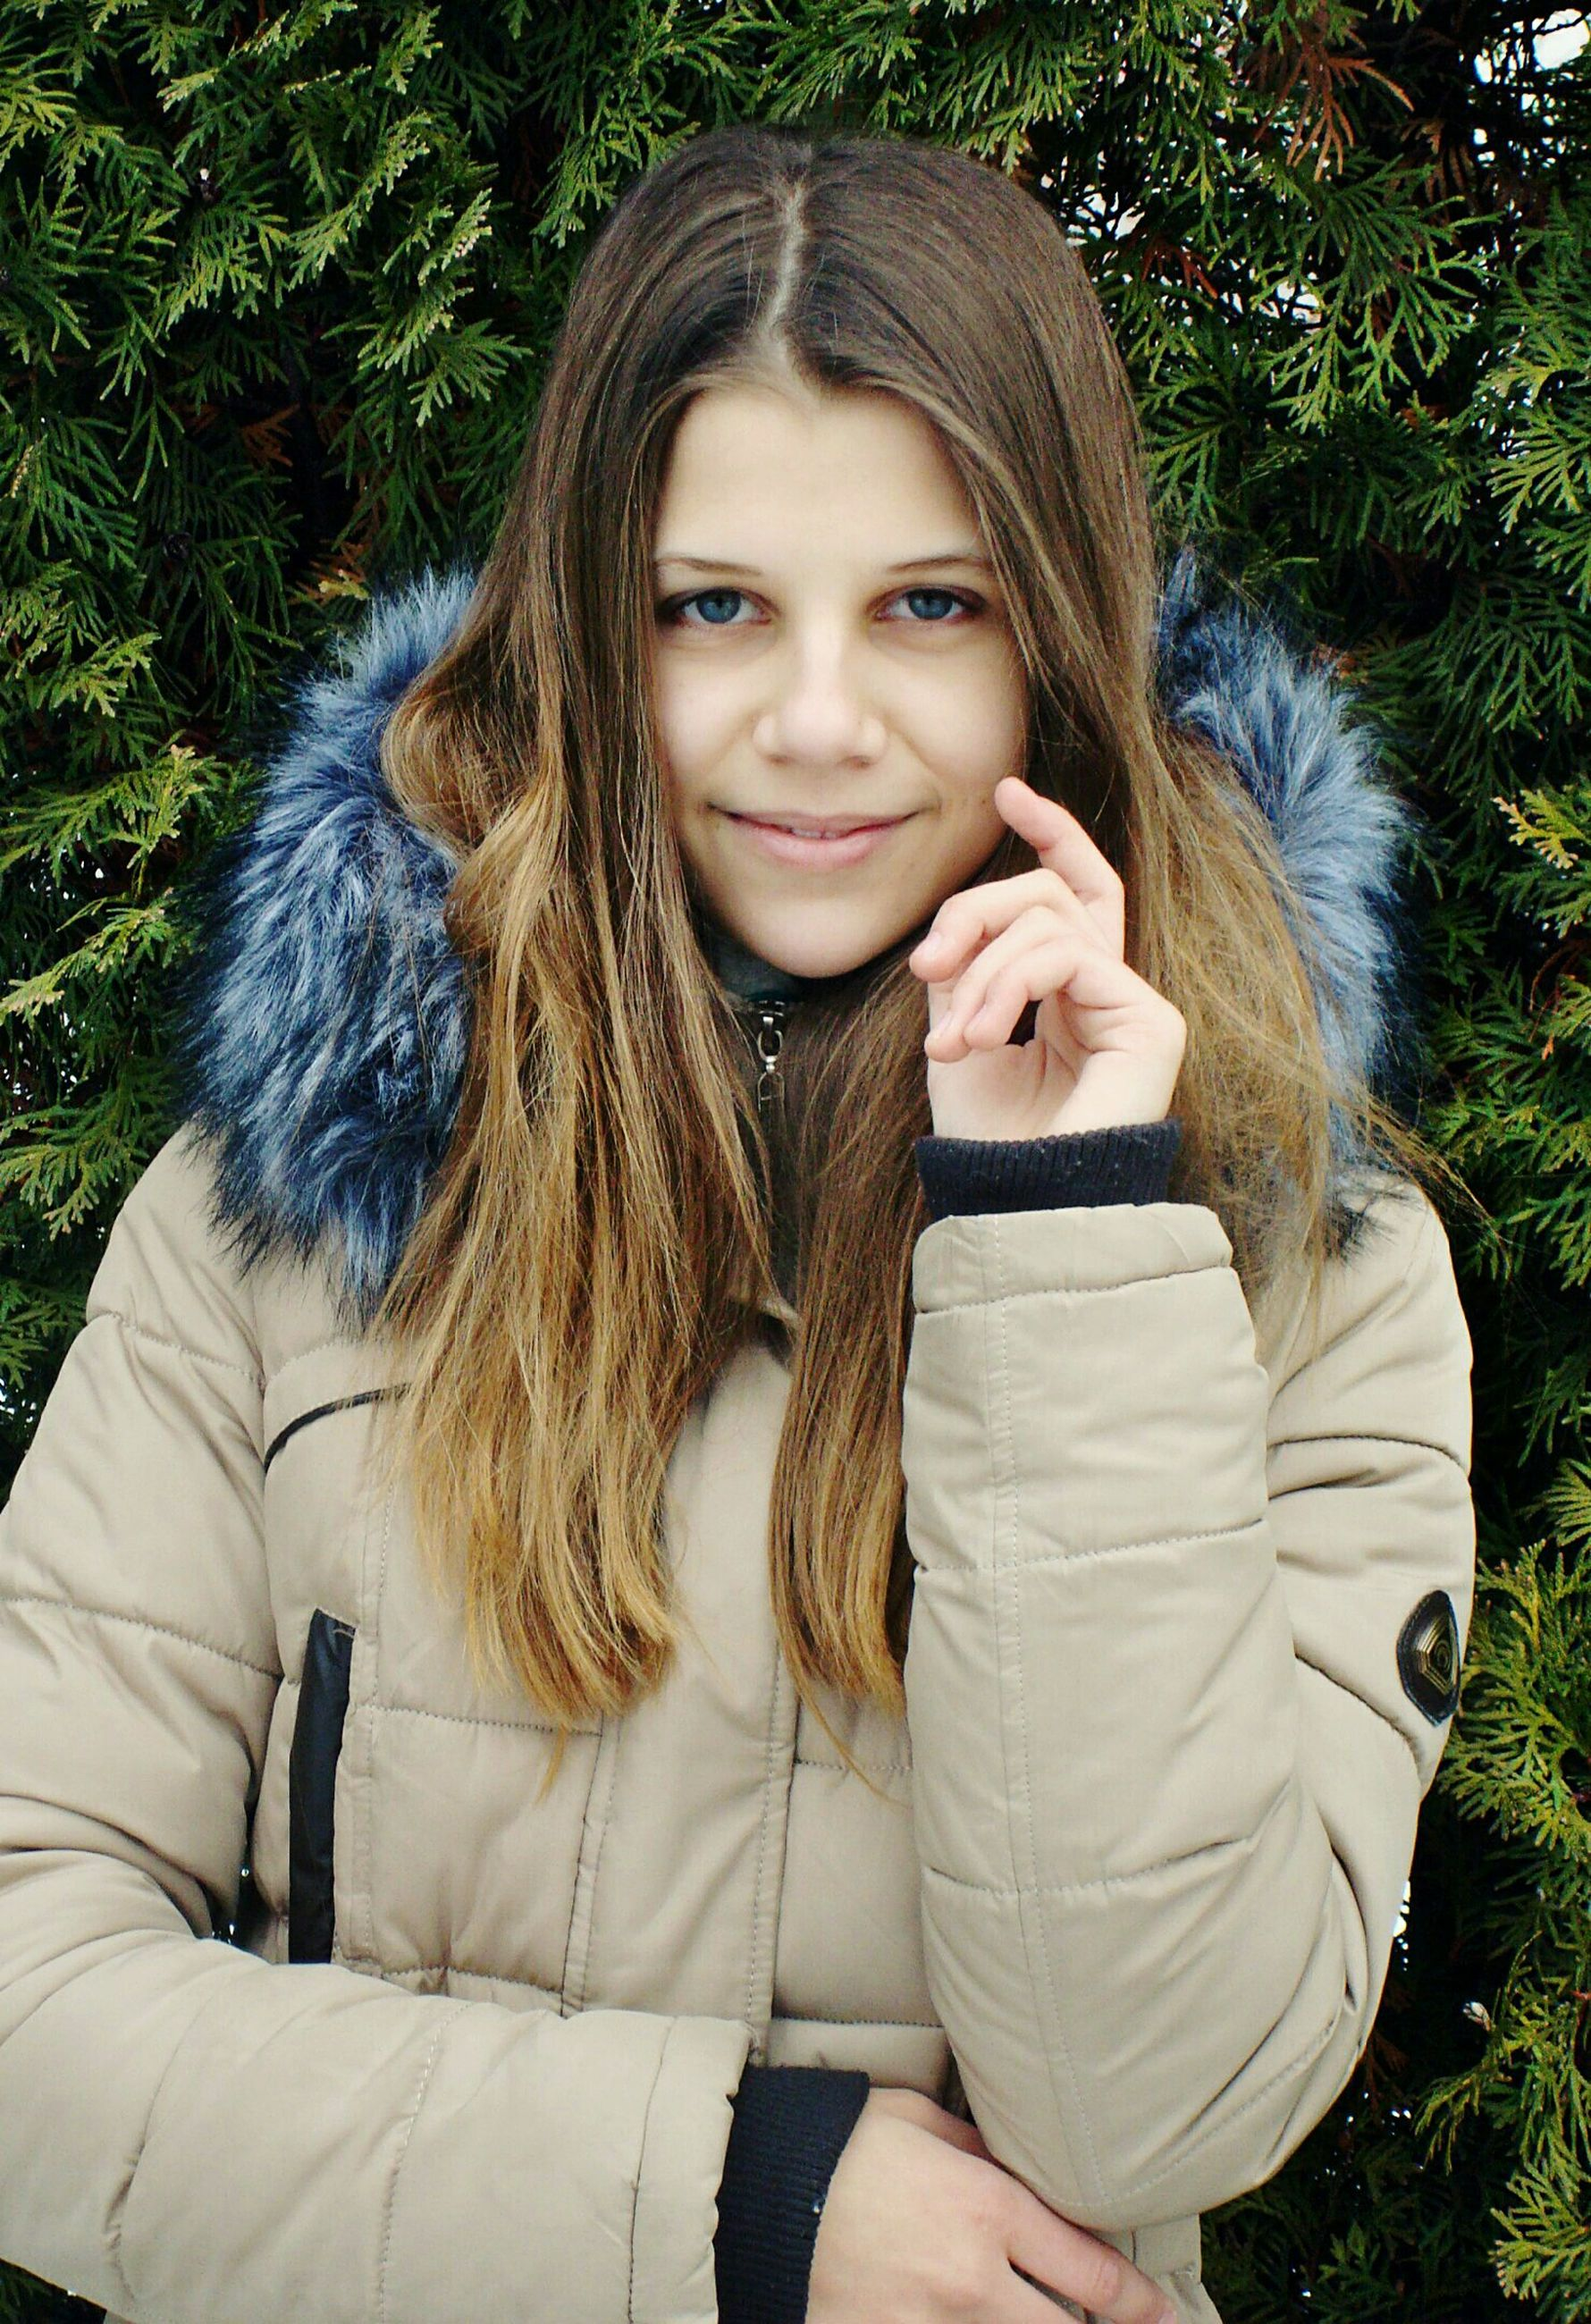 portrait, looking at camera, beautiful people, smiling, beautiful woman, long hair, young adult, beauty, young women, cheerful, one woman only, one person, women, people, one young woman only, adults only, nature, outdoors, close-up, only women, confidence, happiness, adult, winter, knitted, warm clothing, beauty in nature, day, human body part